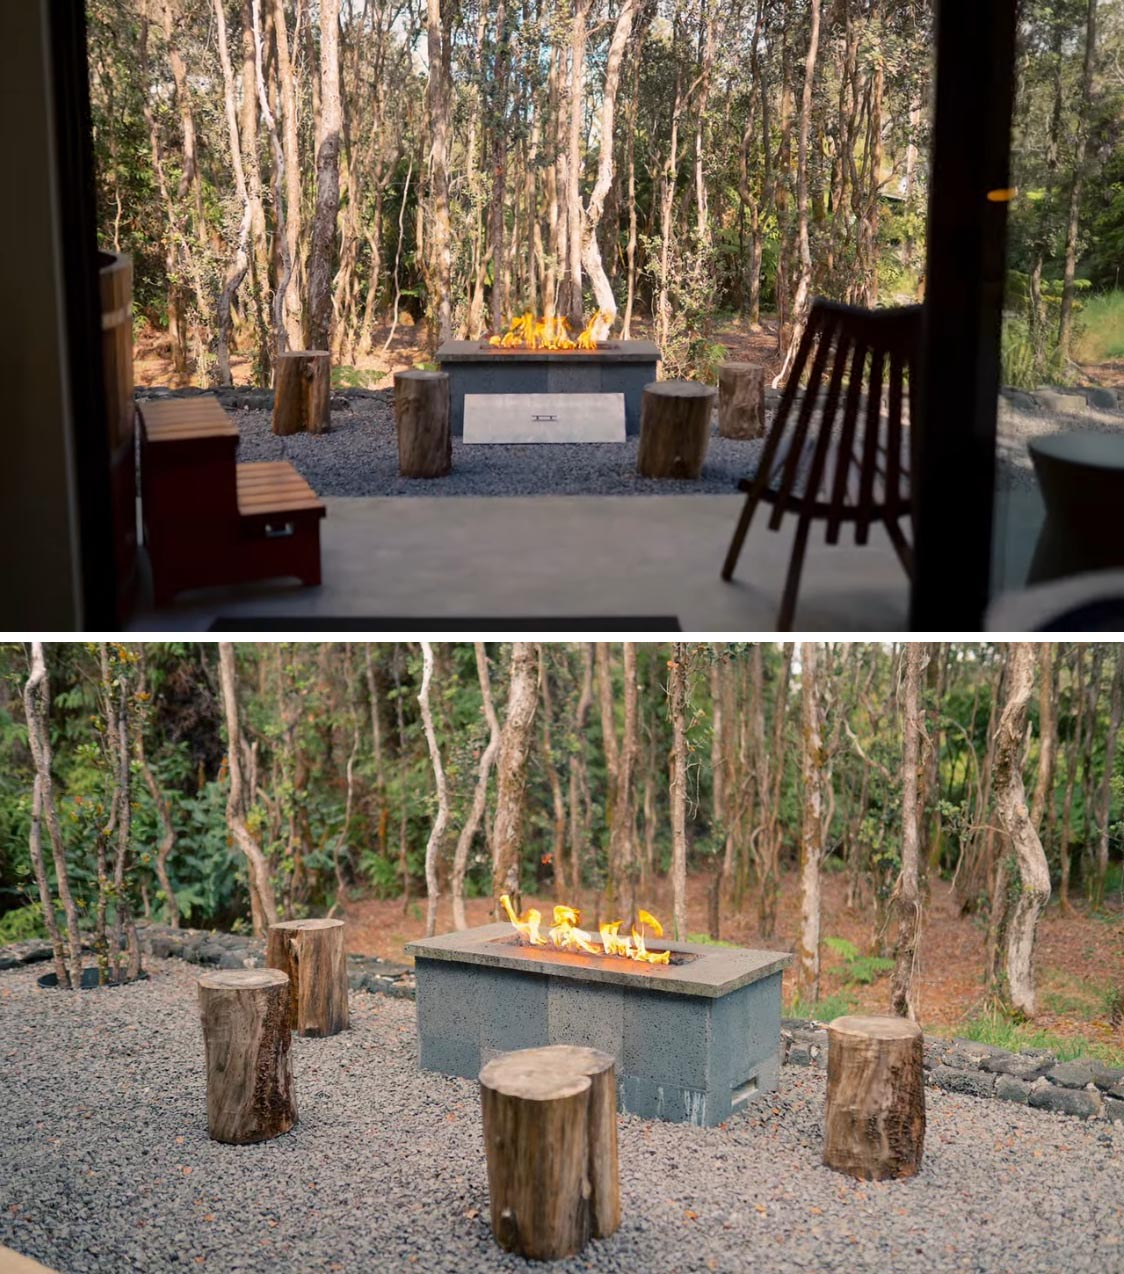 An outdoor fire pit surrounded by wood stools.